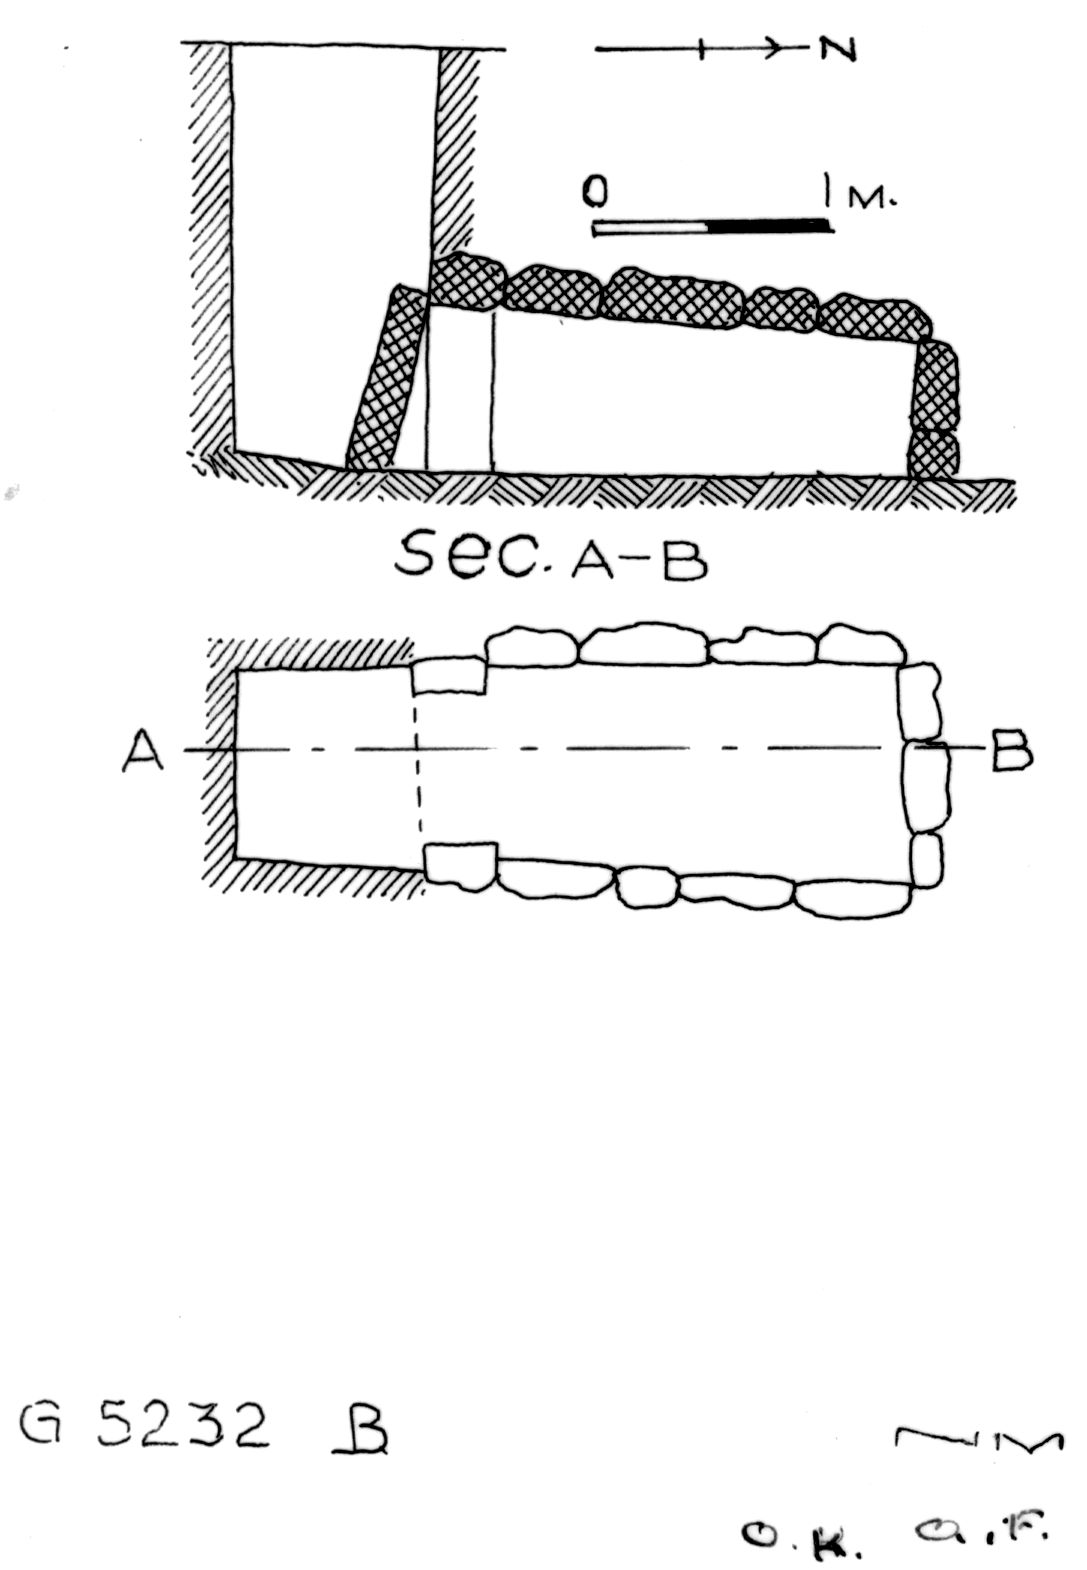 Maps and plans: G 5232, Shaft B